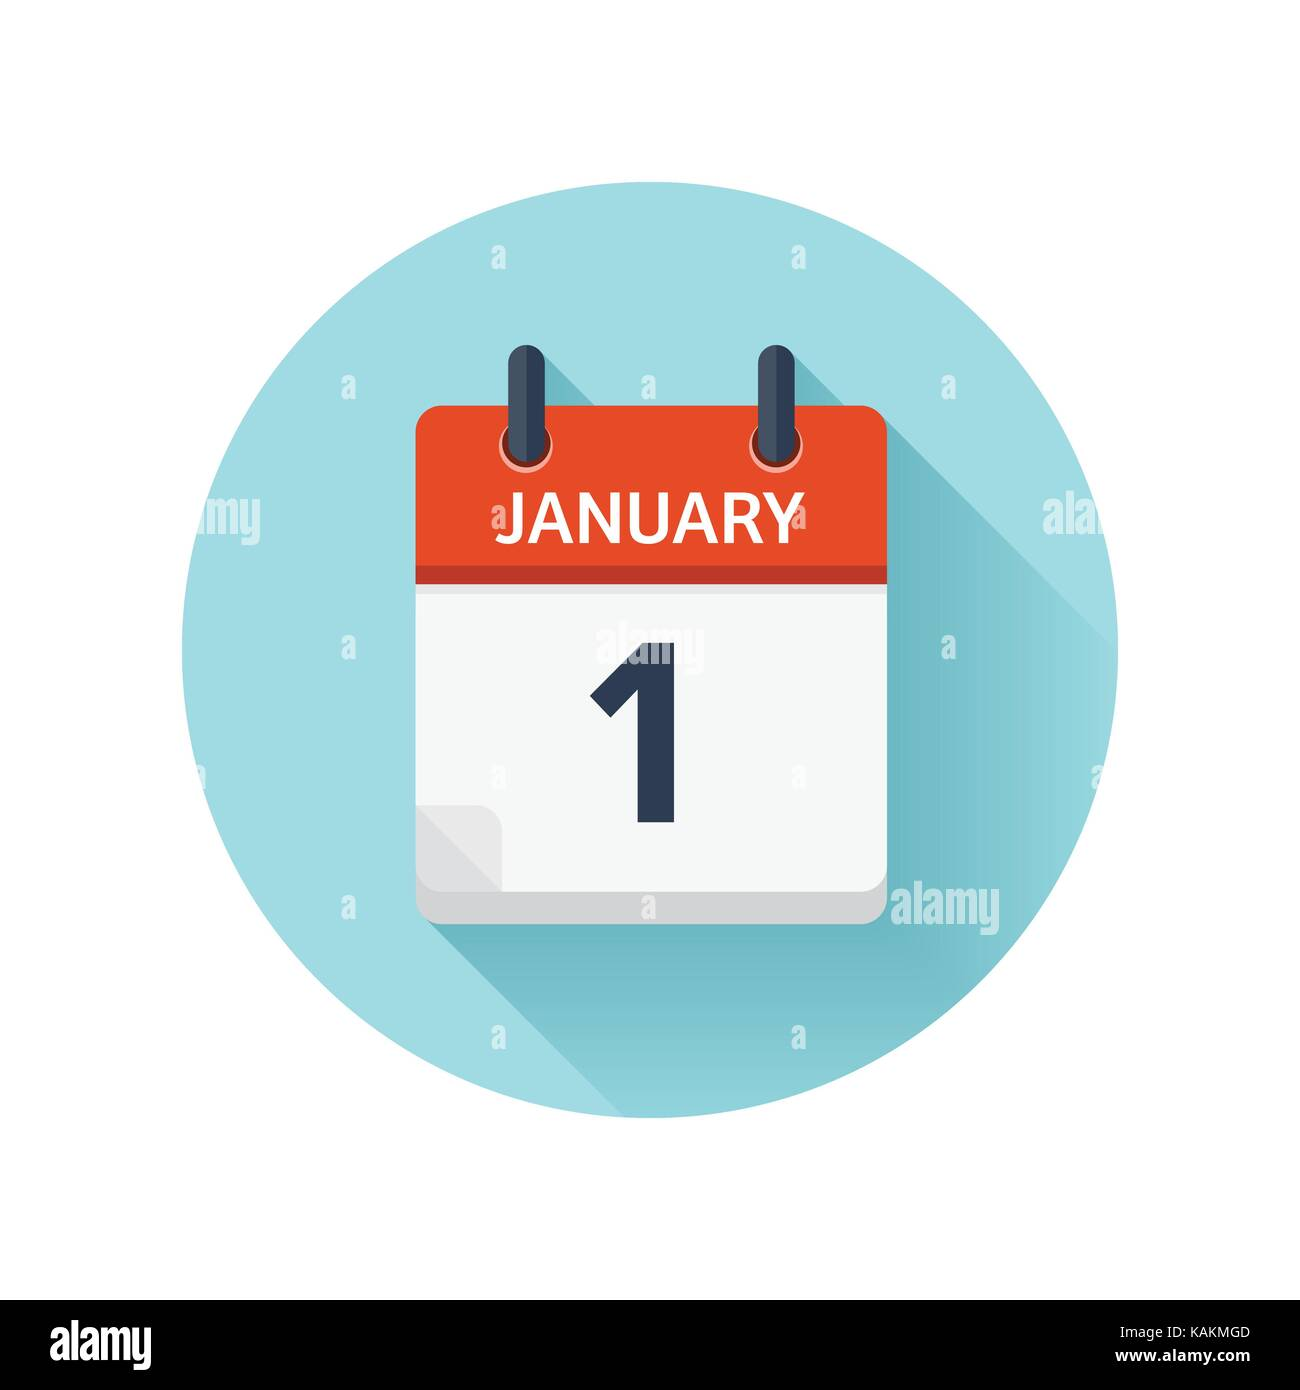 January 1. Vector flat daily calendar icon. Date and time, day